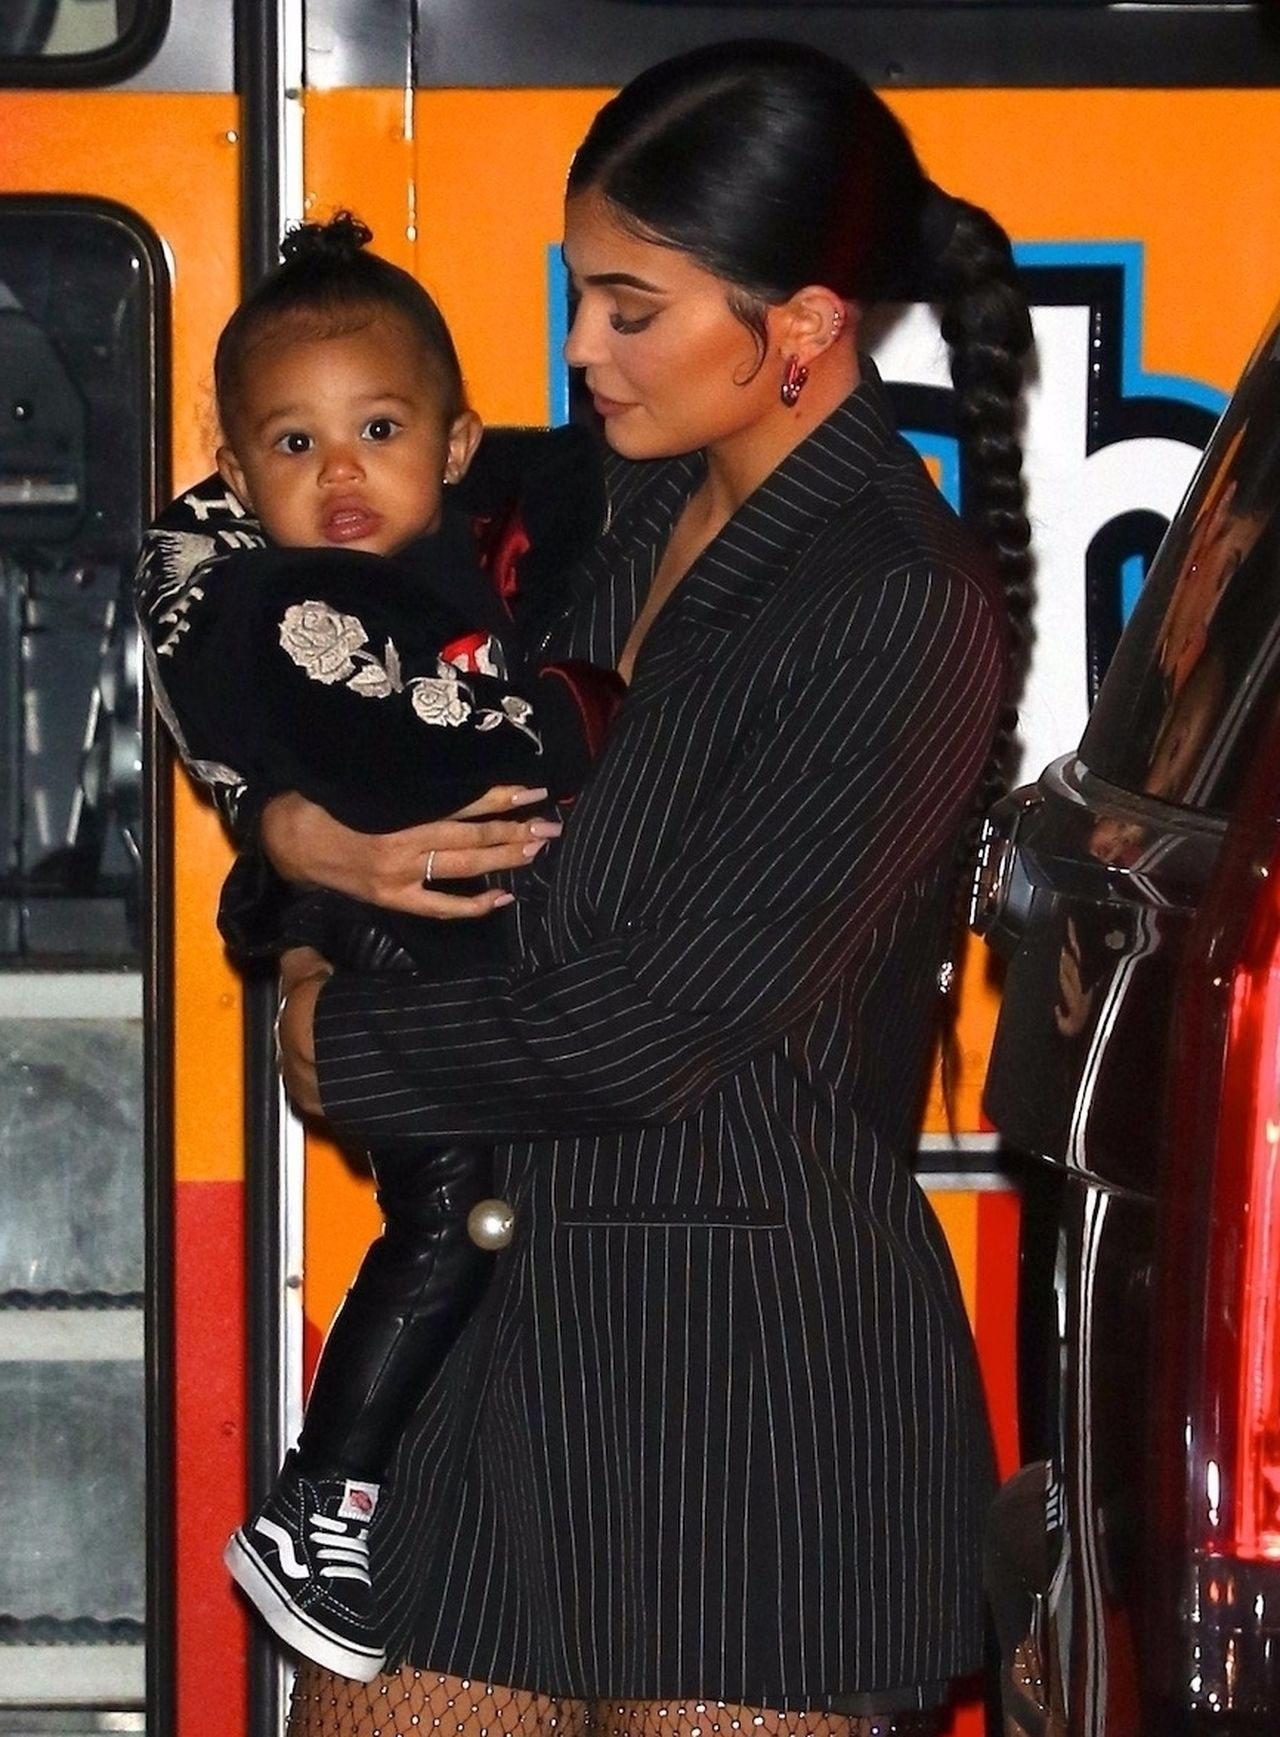 Kylie Jenner takes adorable baby Stormi out to dinner at Nobu in NYC